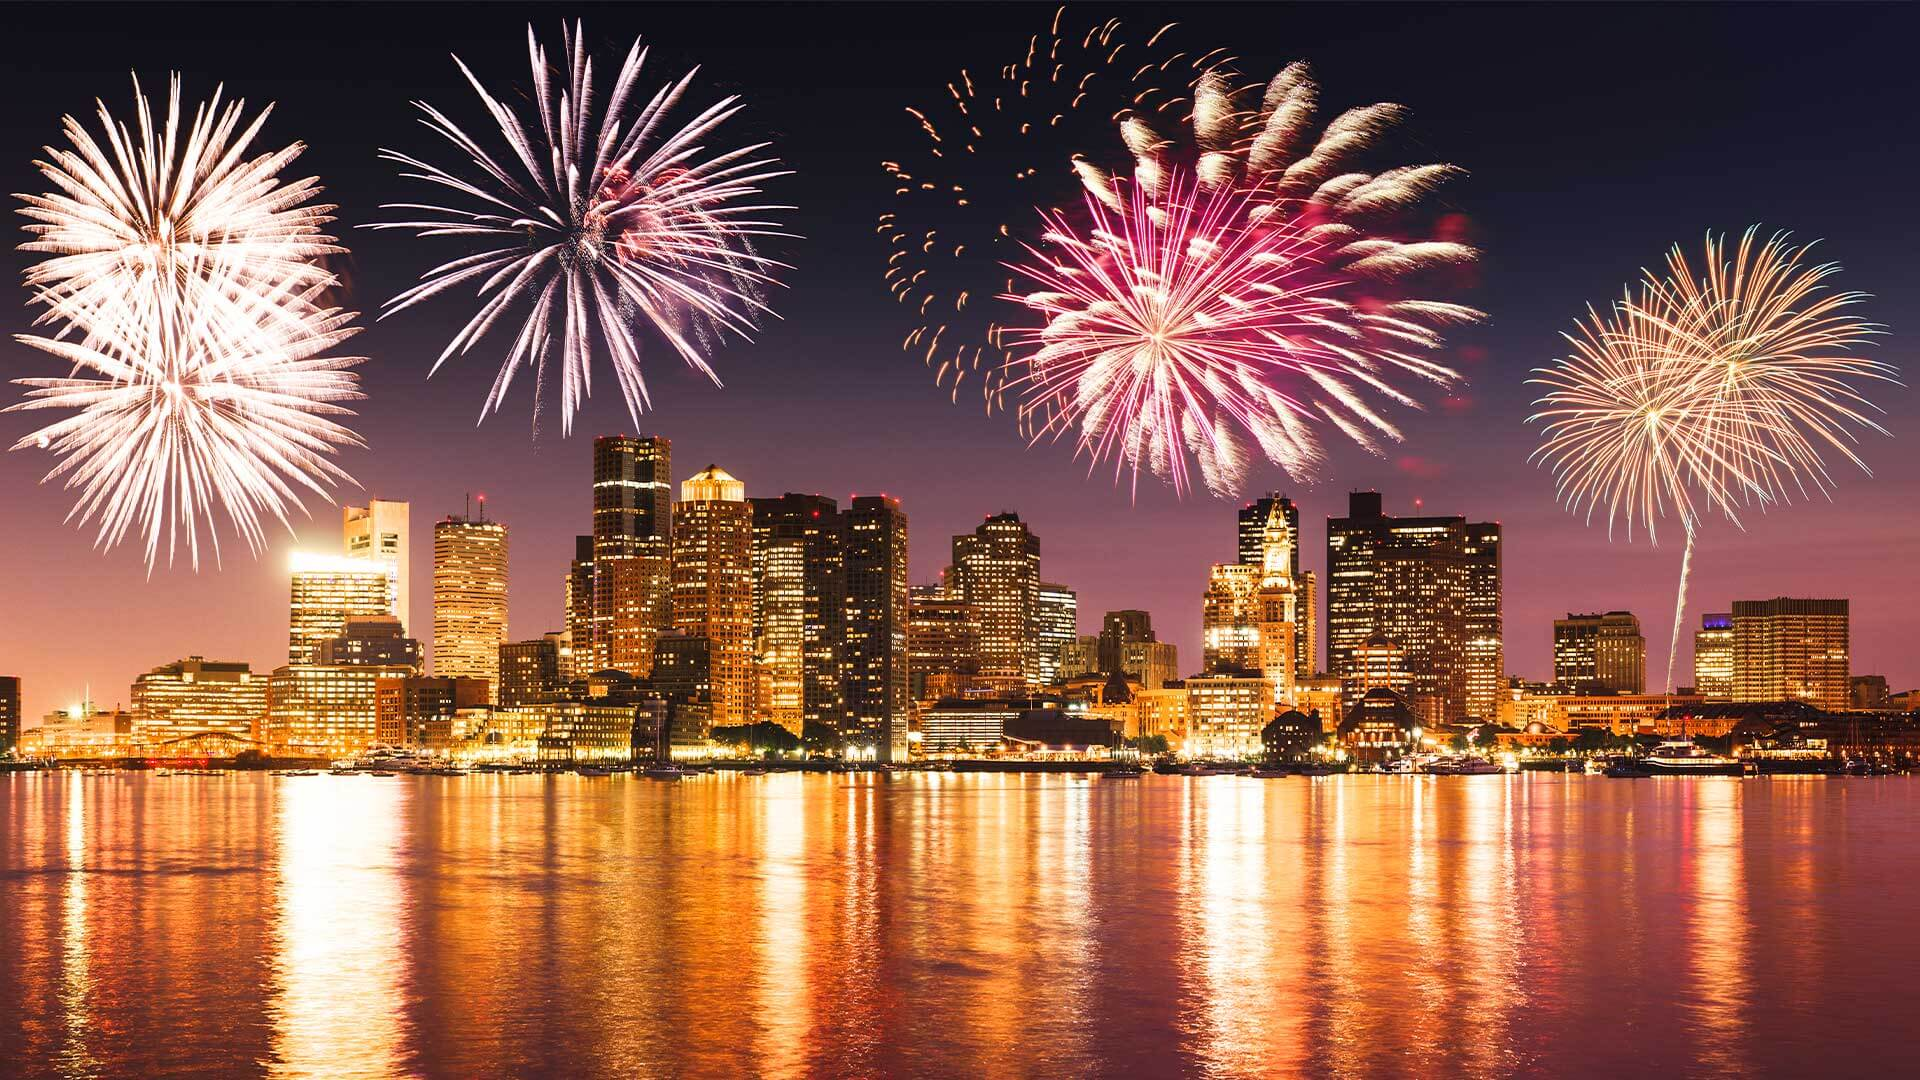 photo of fireworks over Charles River in boston